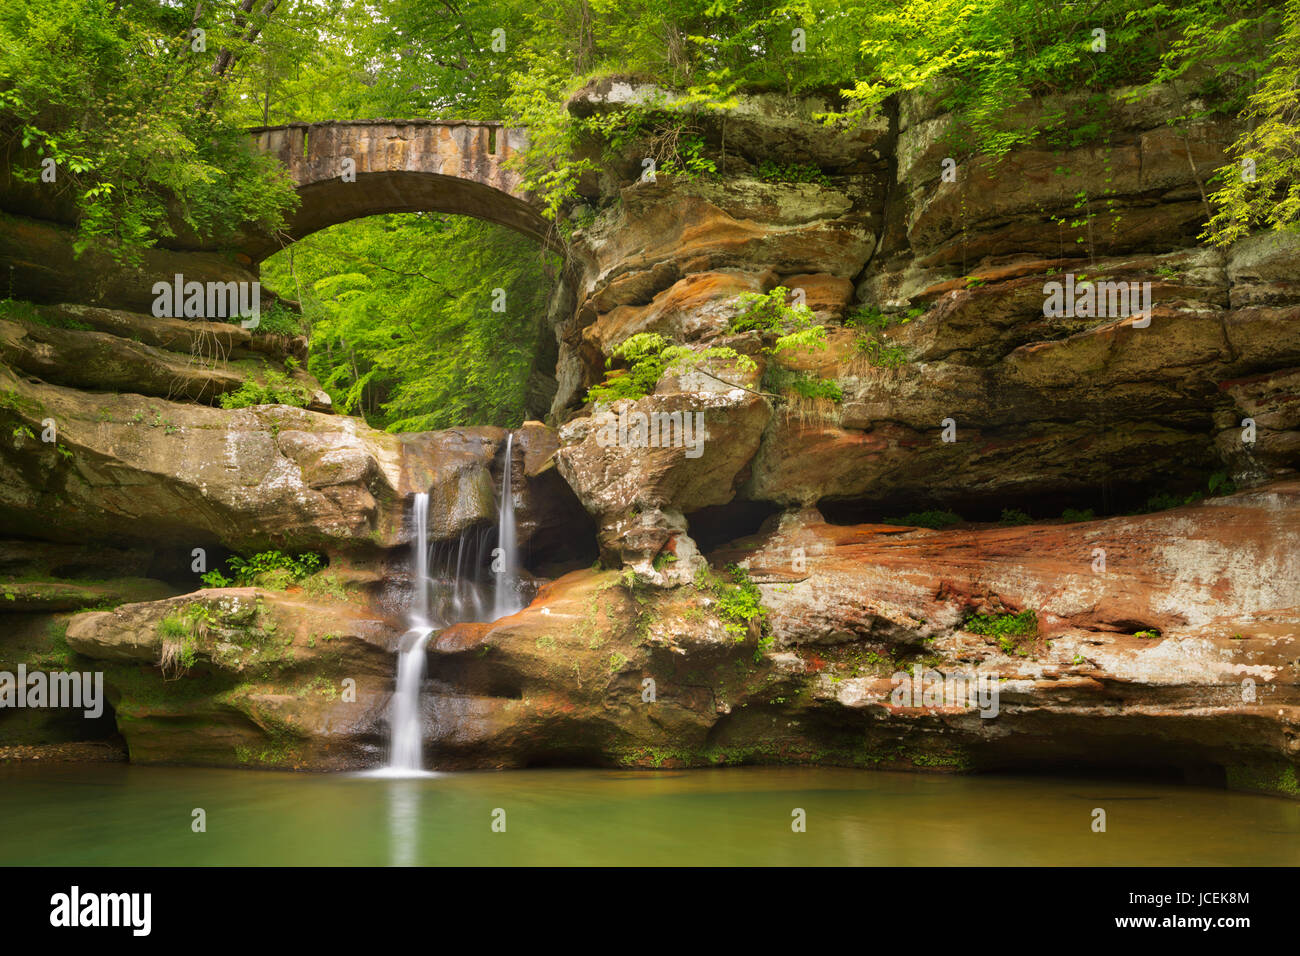 The Upper Falls waterfall and bridge in Hocking Hills State Park, Ohio, USA. - Stock Image